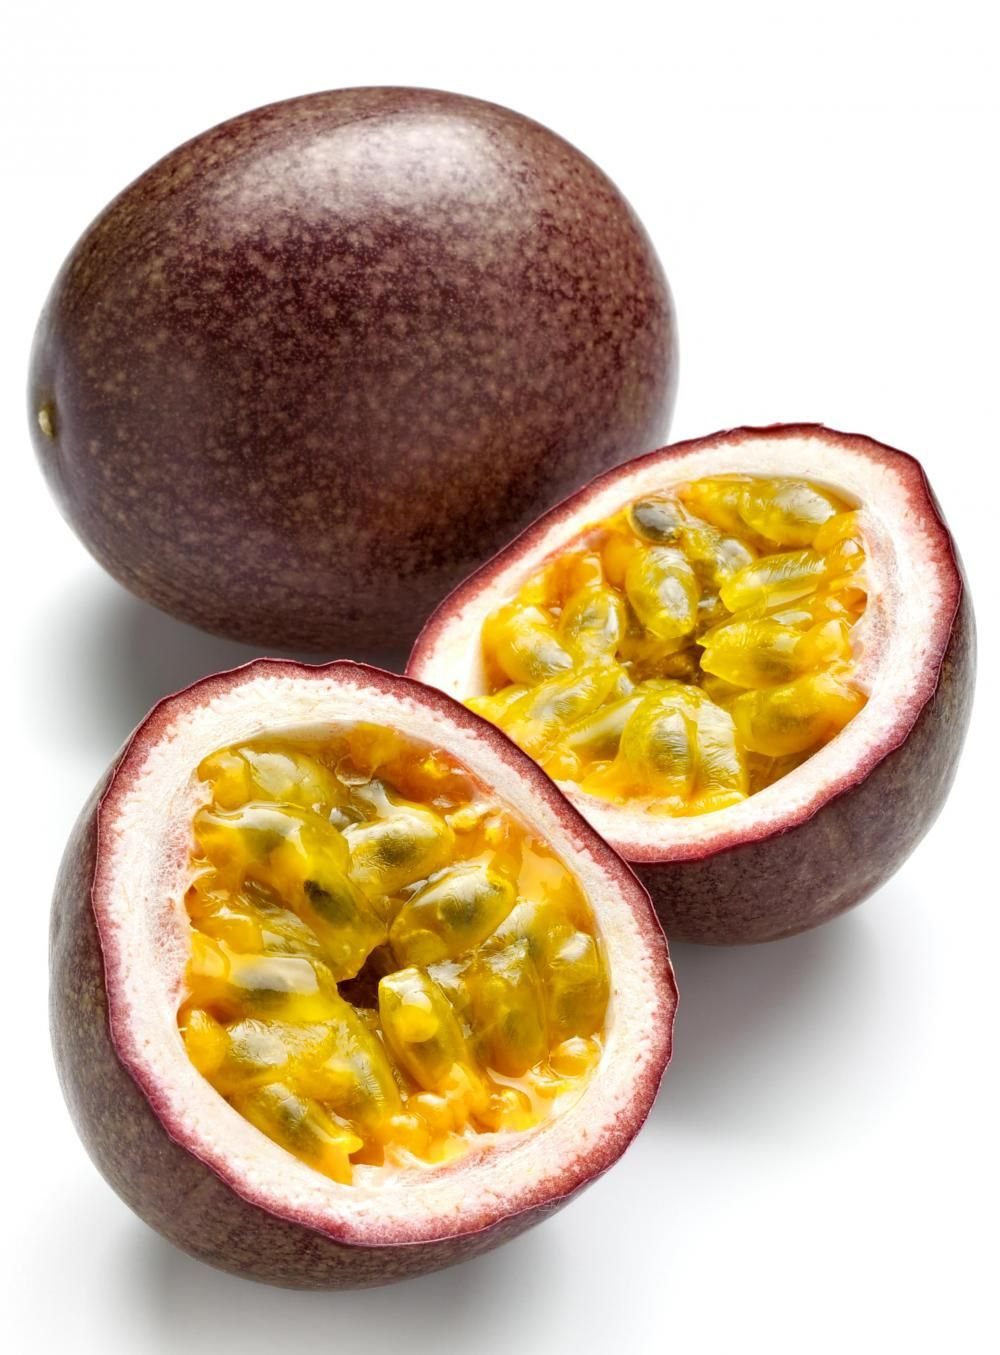 Passion Fruit I Was A Lucky Child The Vines Grew Through Trees In The